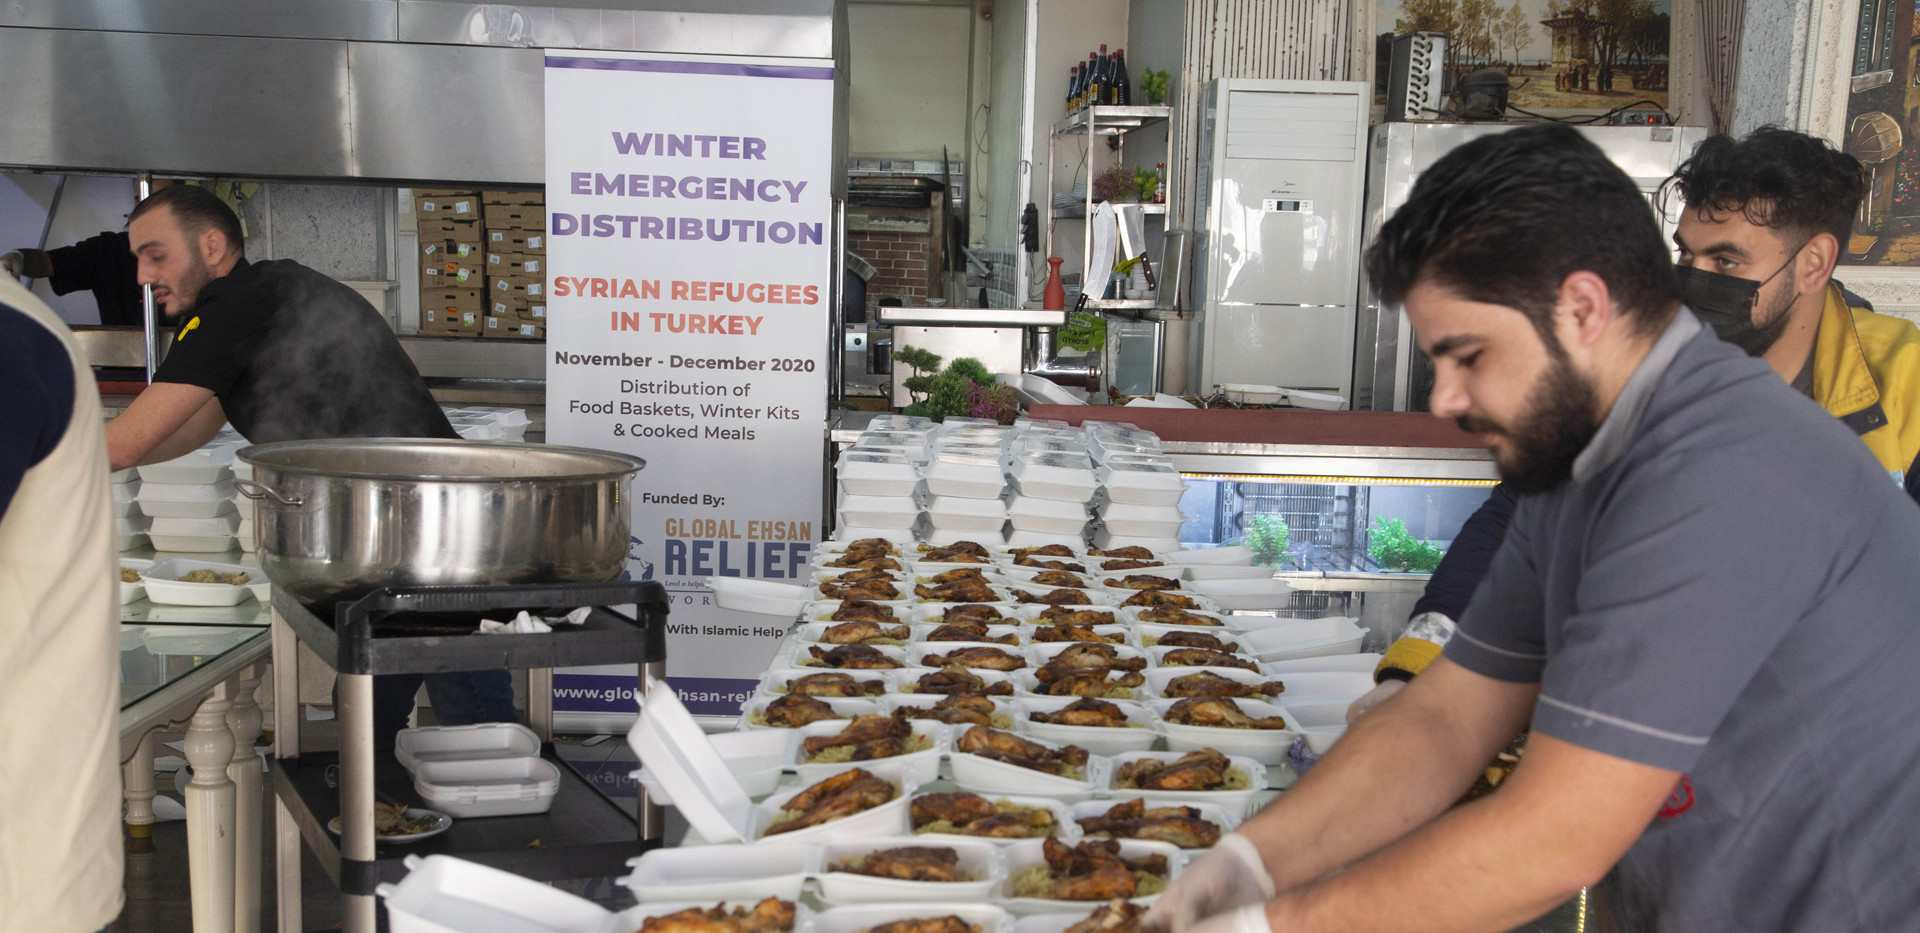 Distribution of Cooked Meals for Syrian Refugees in Turkey